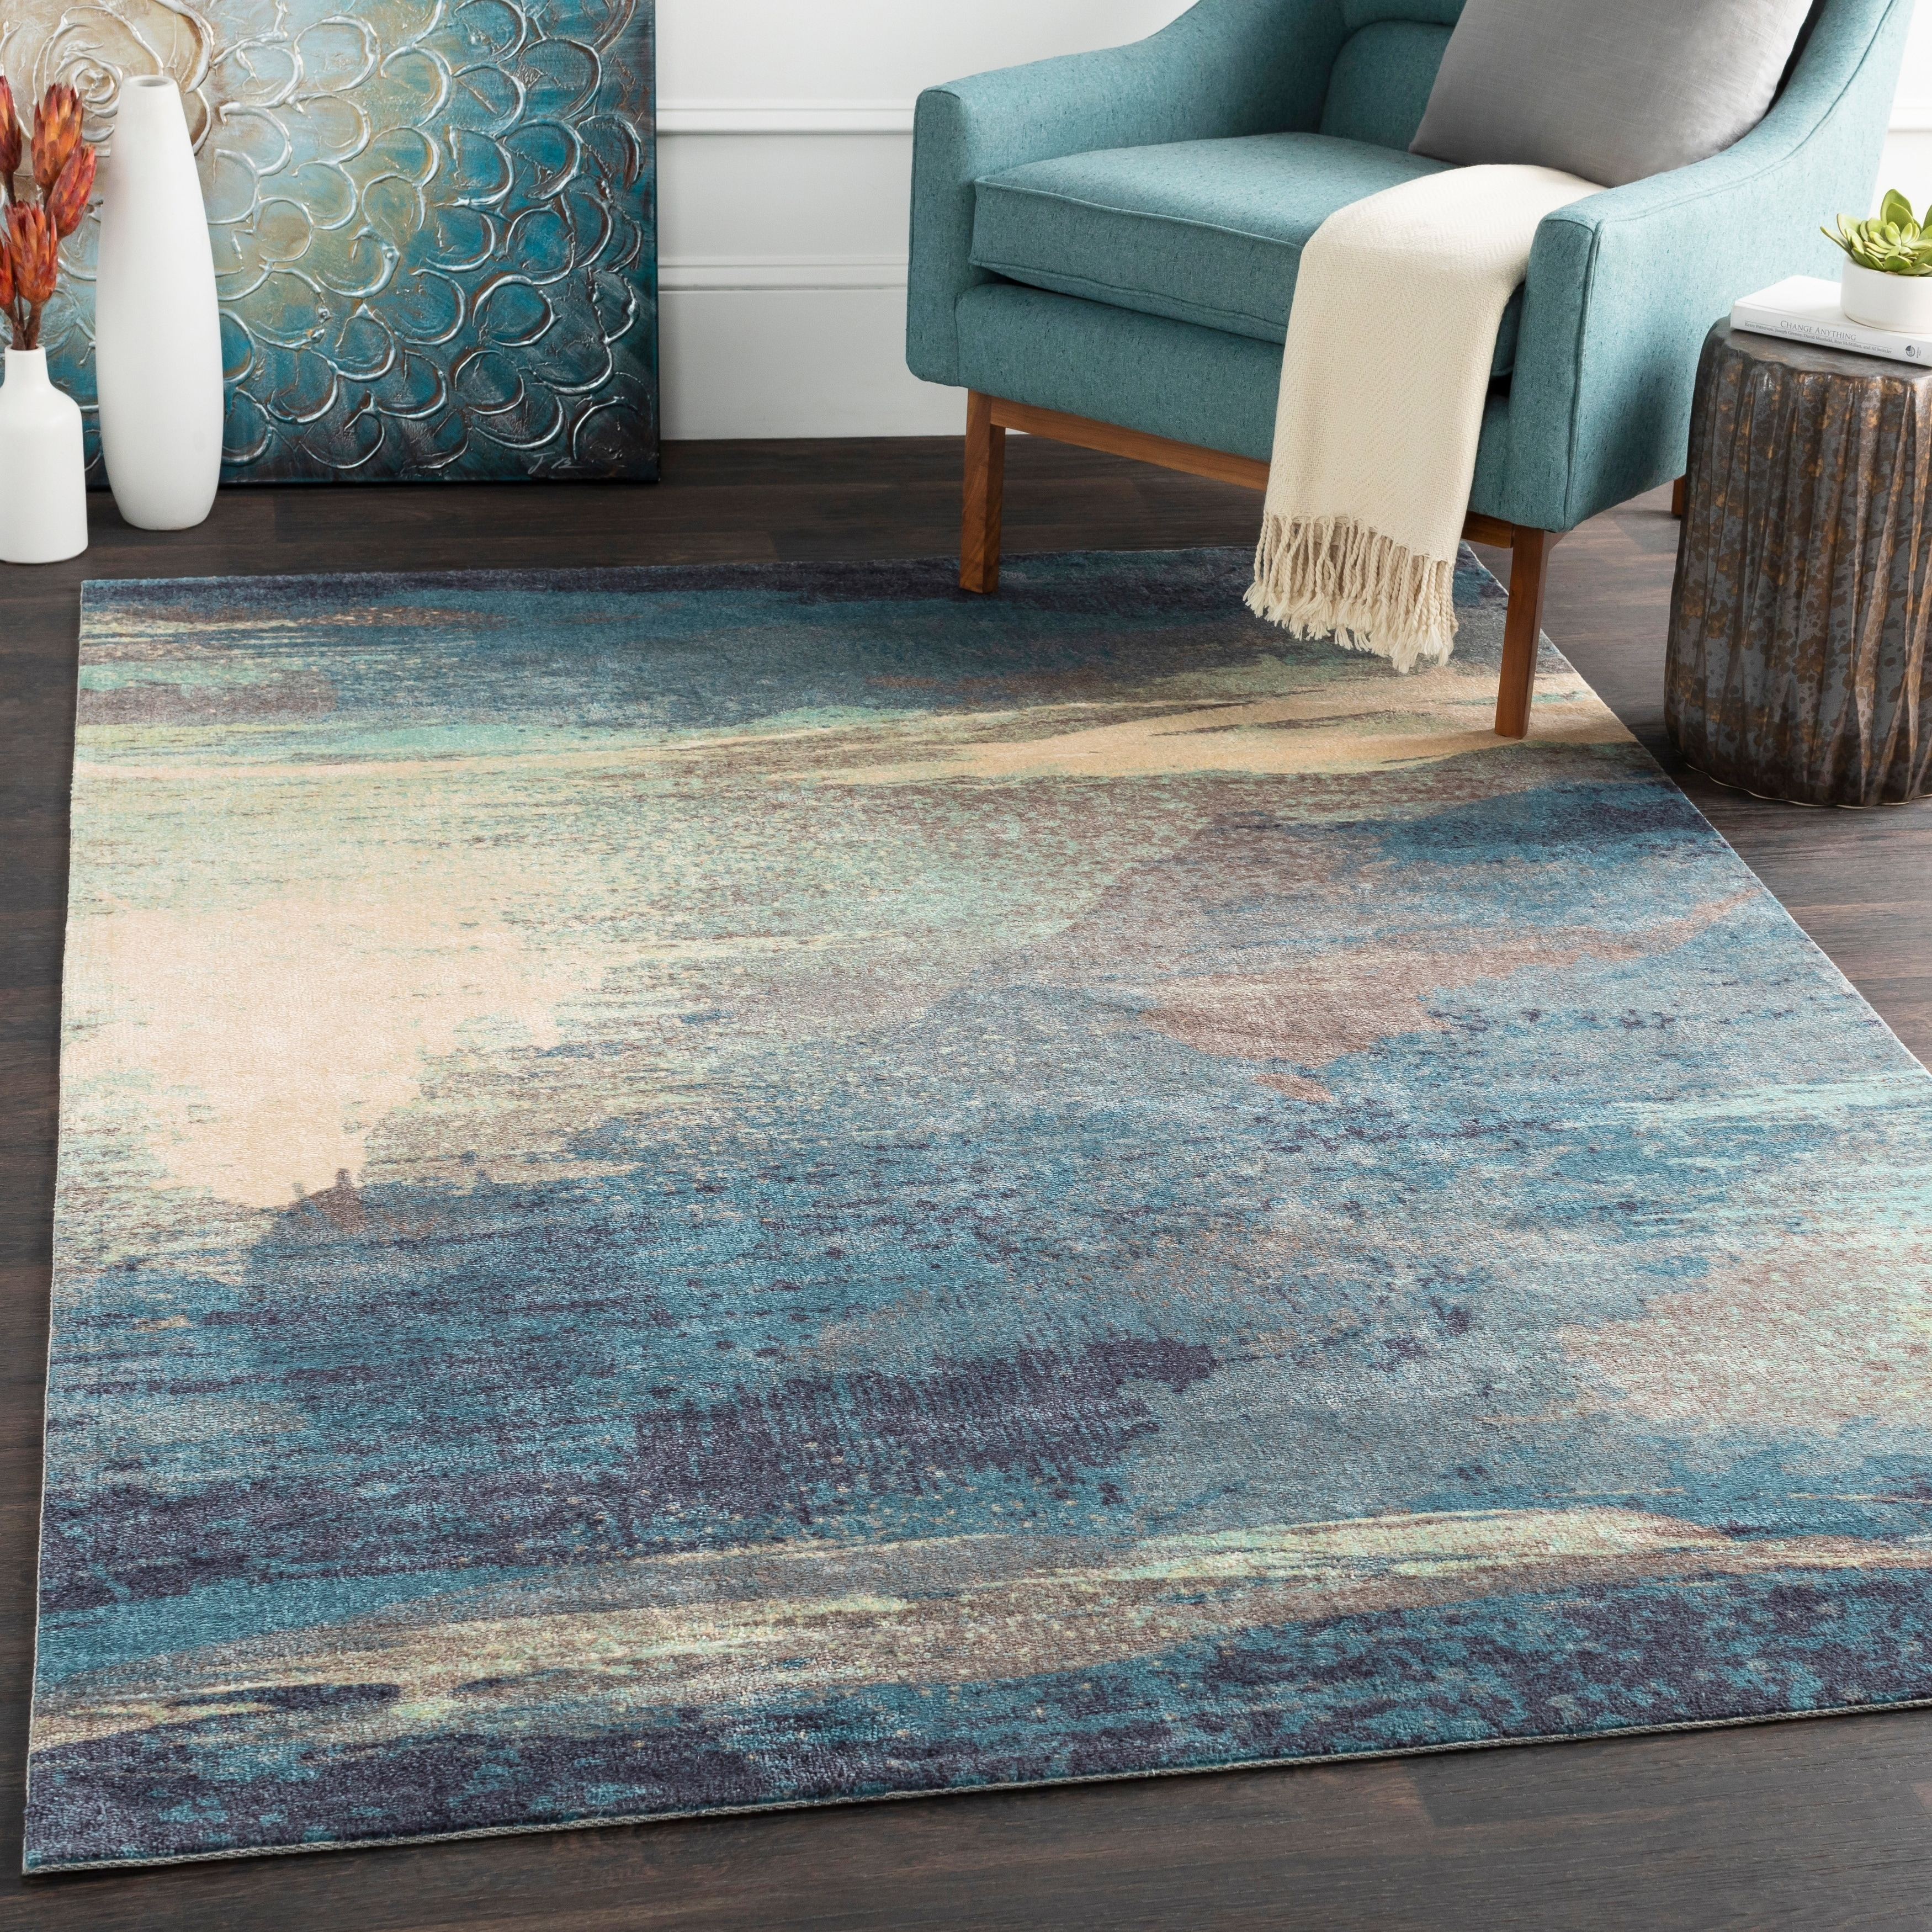 Shop Rachel Blue Abstract Area Rug 4 X 6 On Sale Free Shipping Today Overstock 11050283